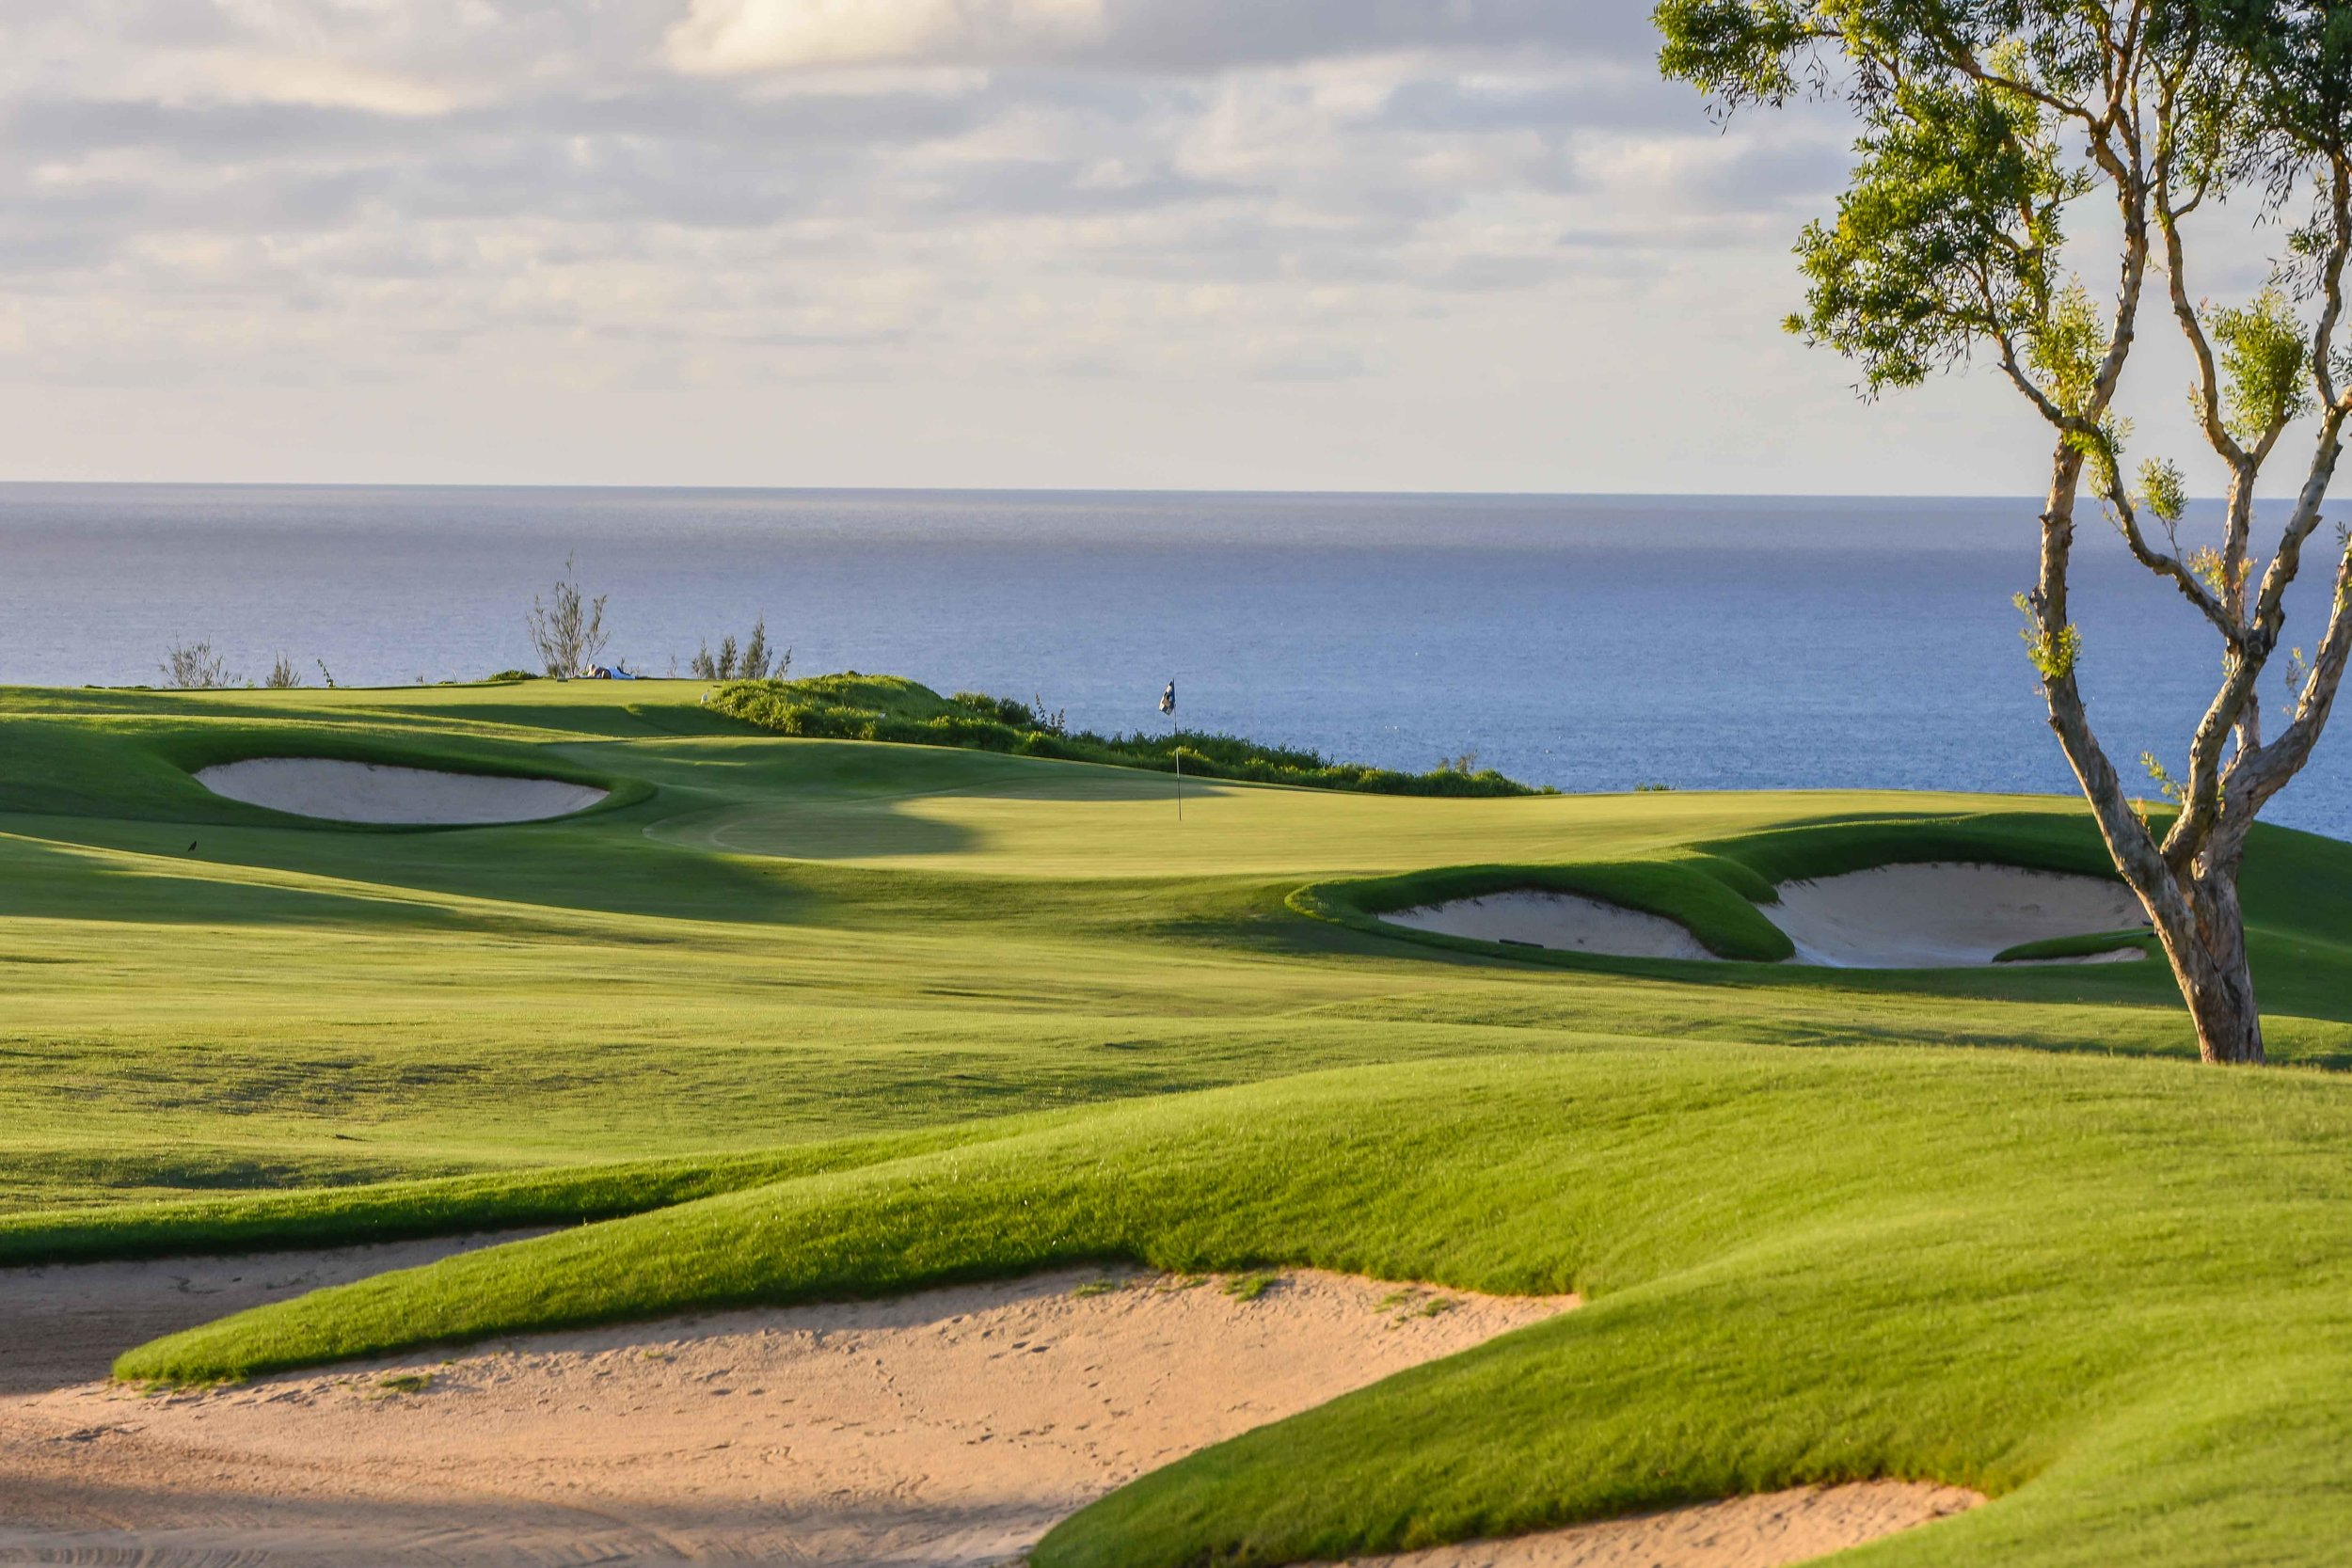 The 6th hole is your first view of the ocean at the Makai course.